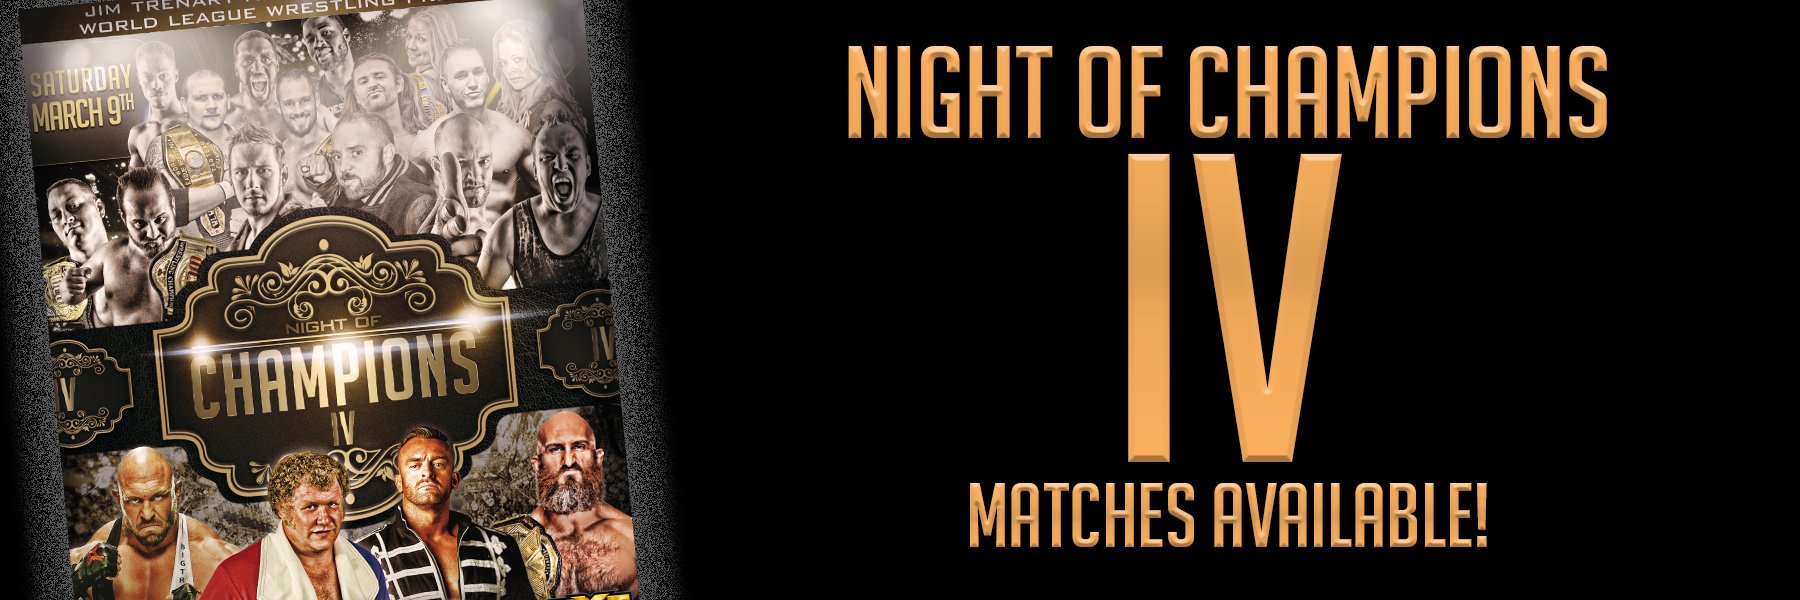 Night of Champions 4 matches available!